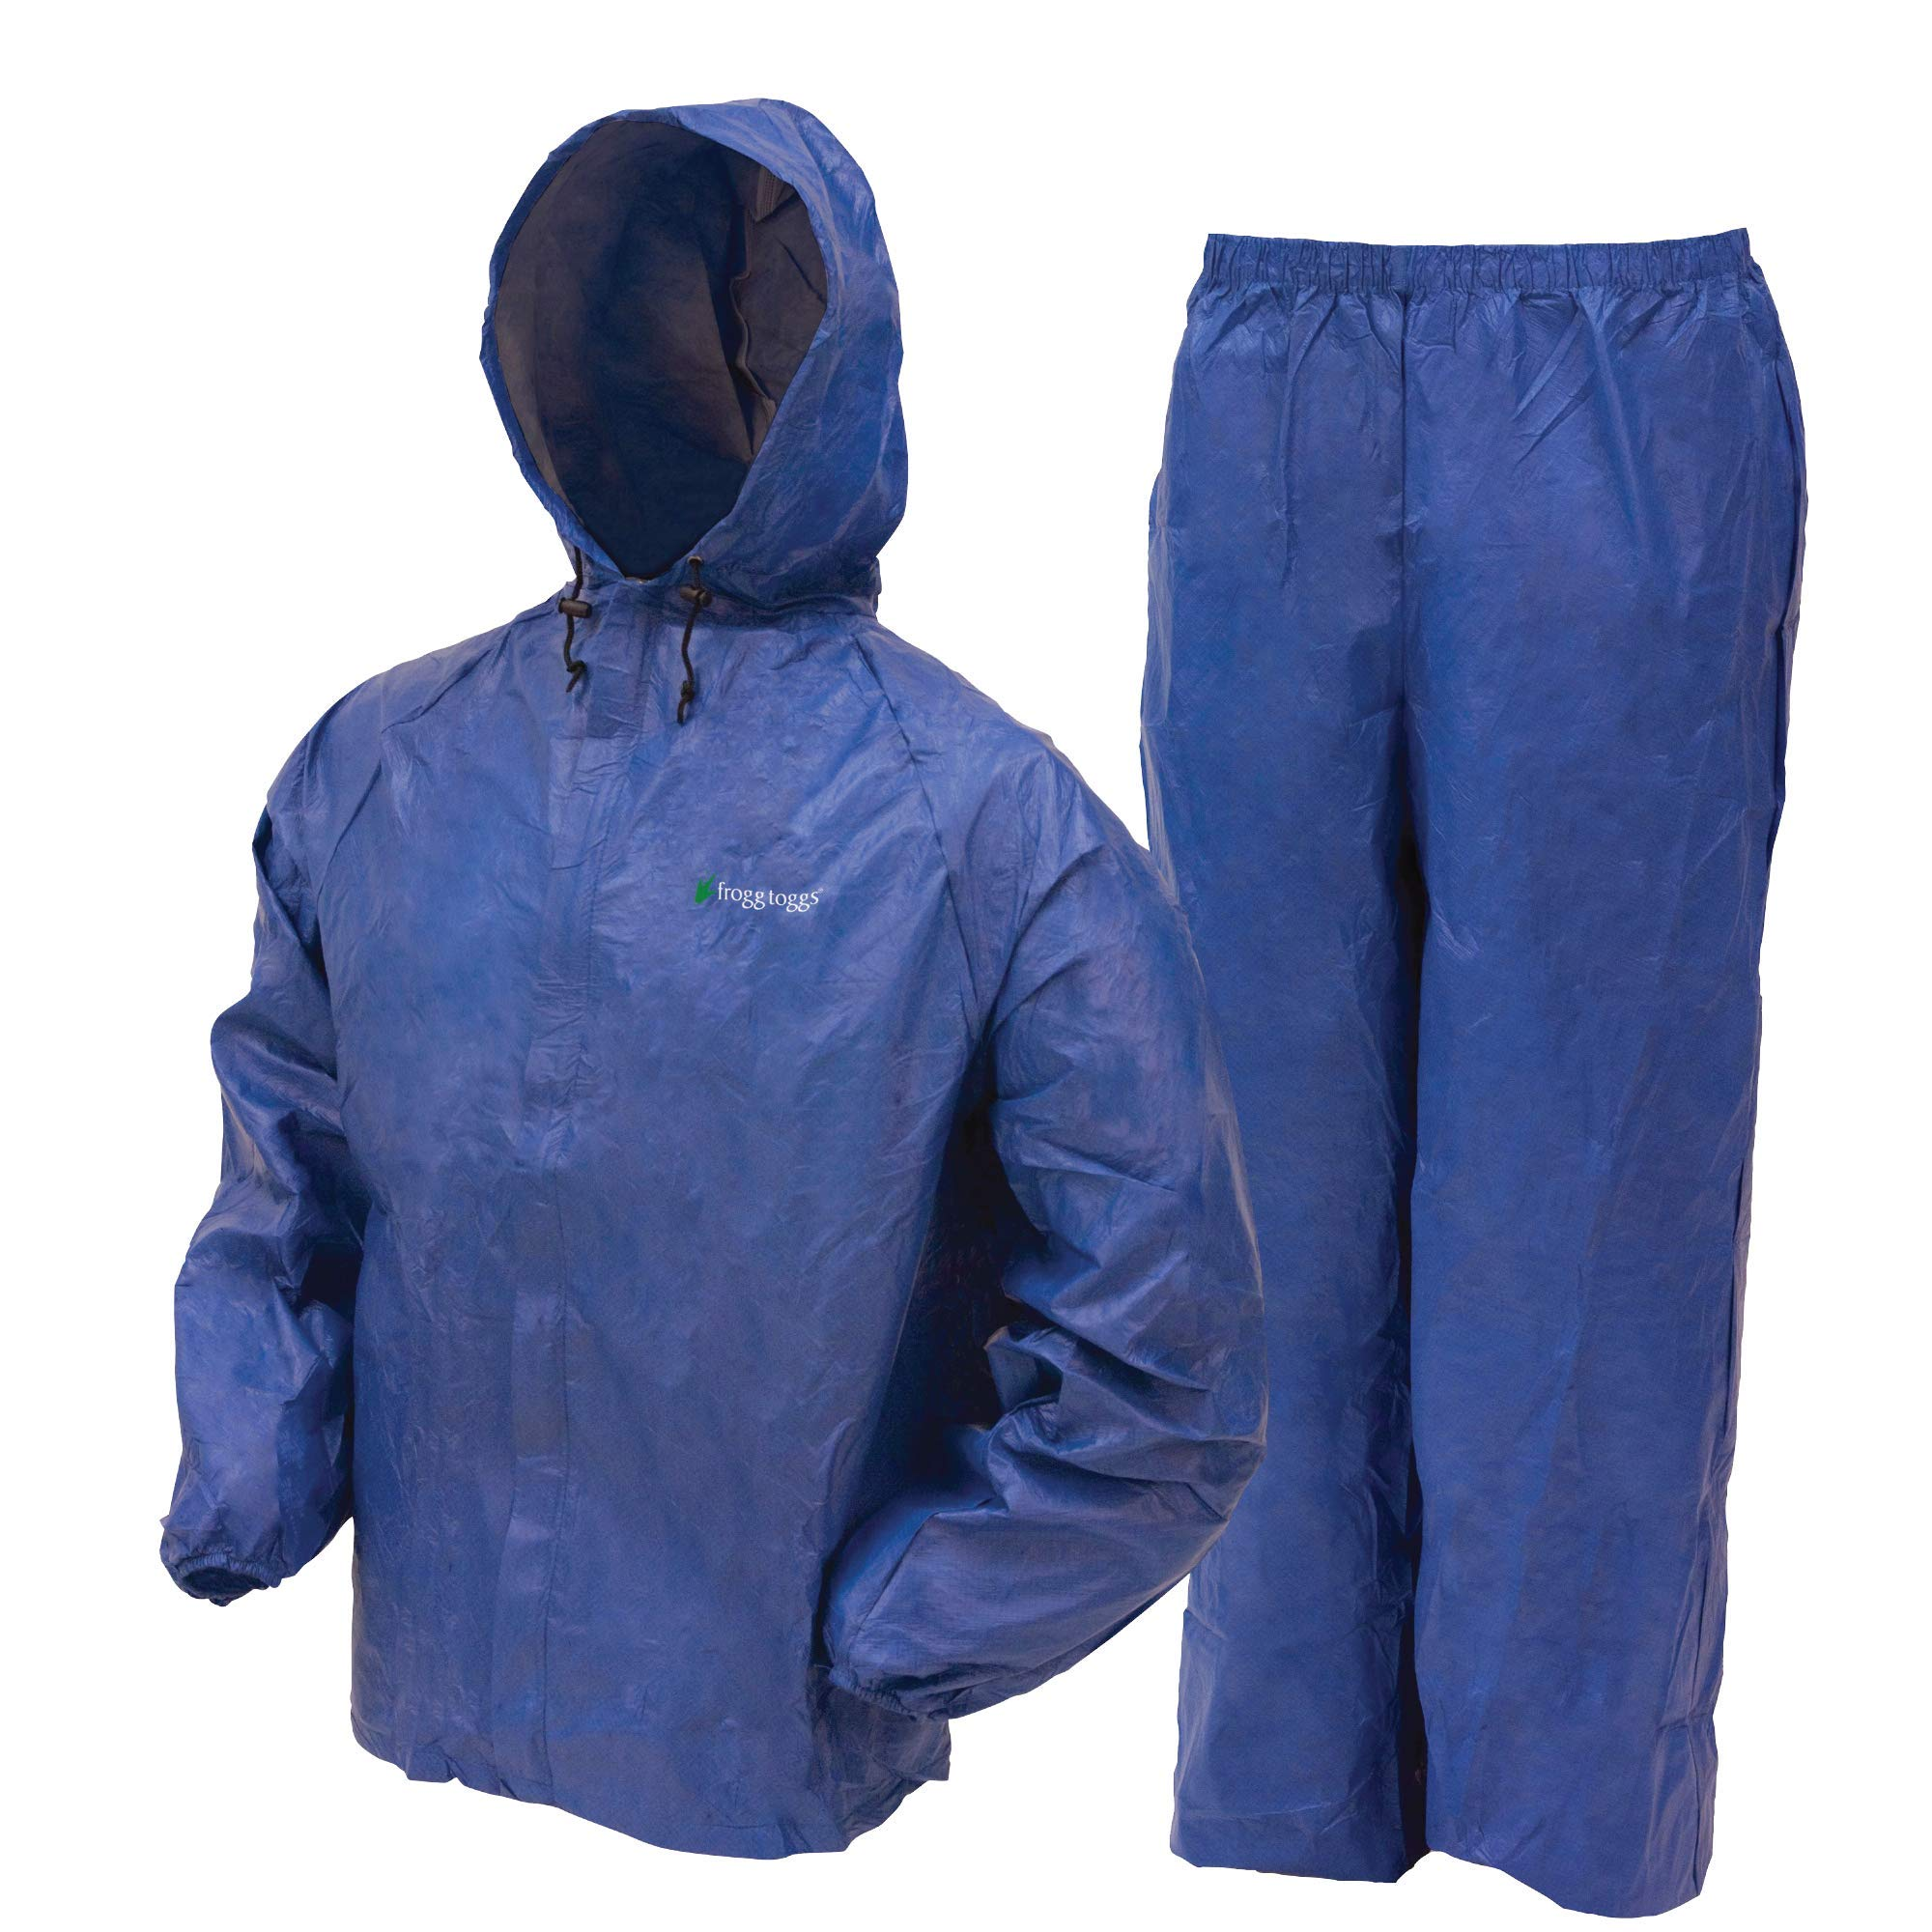 Ultra-Lite2 Waterproof Breathable Protective Rain Suit